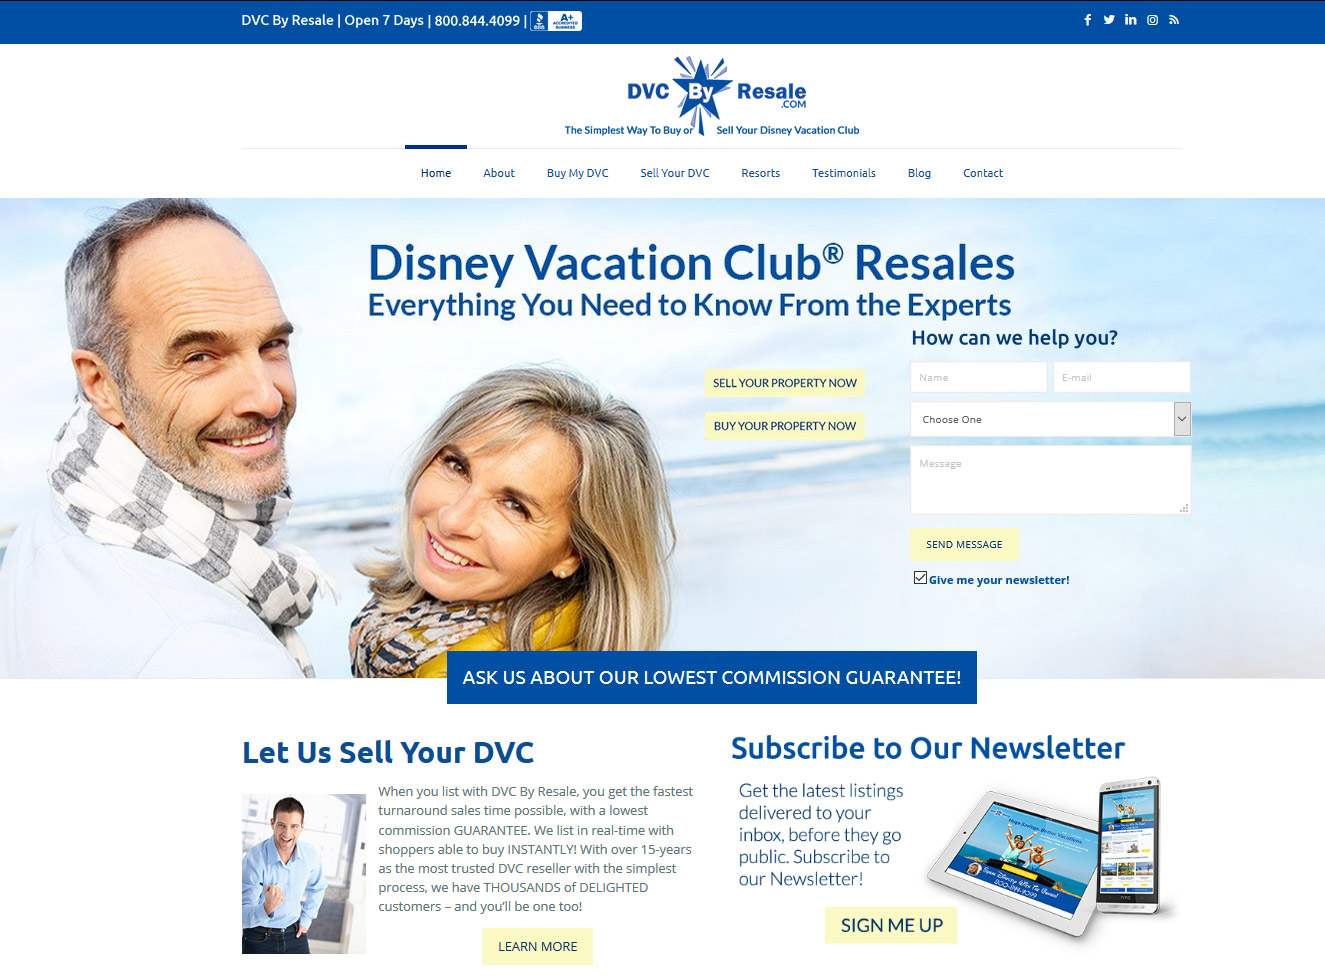 DVC By Resale